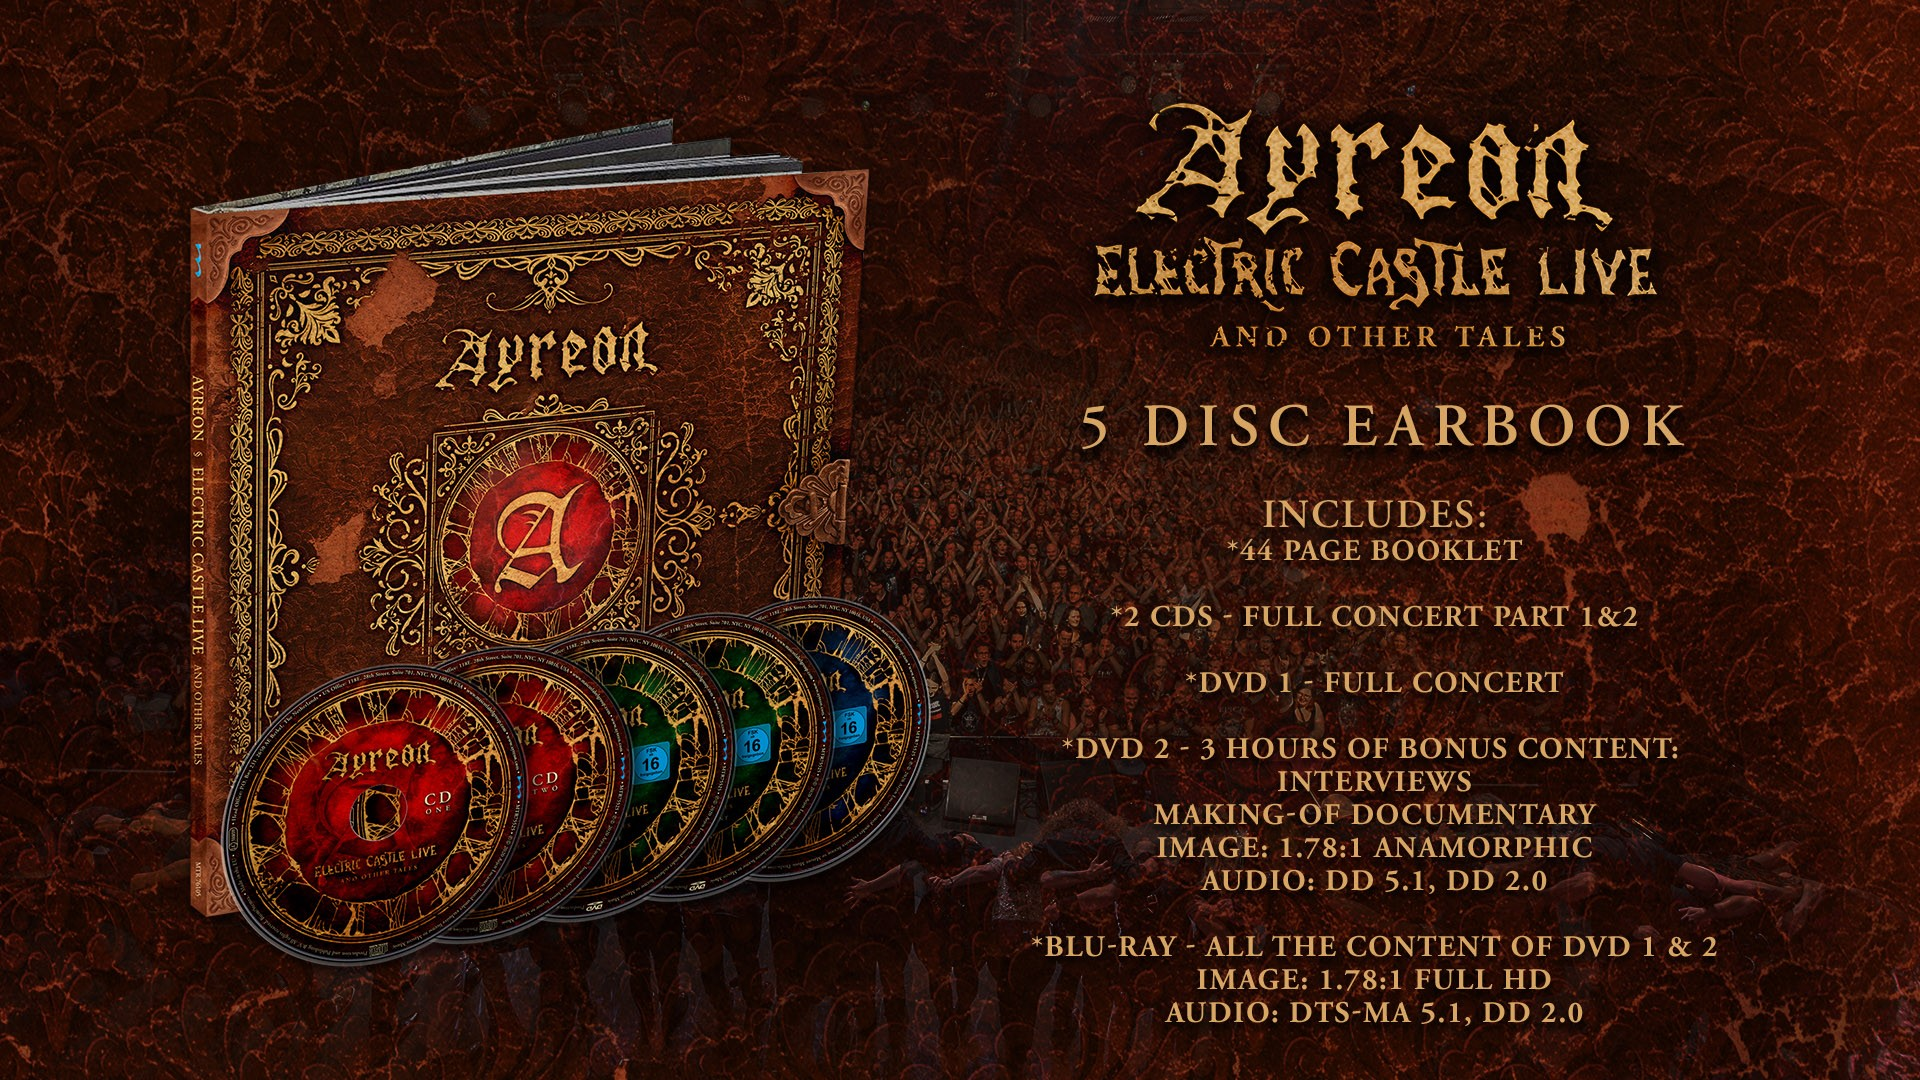 Ayreon - Electric Castle Live and Other Tales Itec-live-earbook